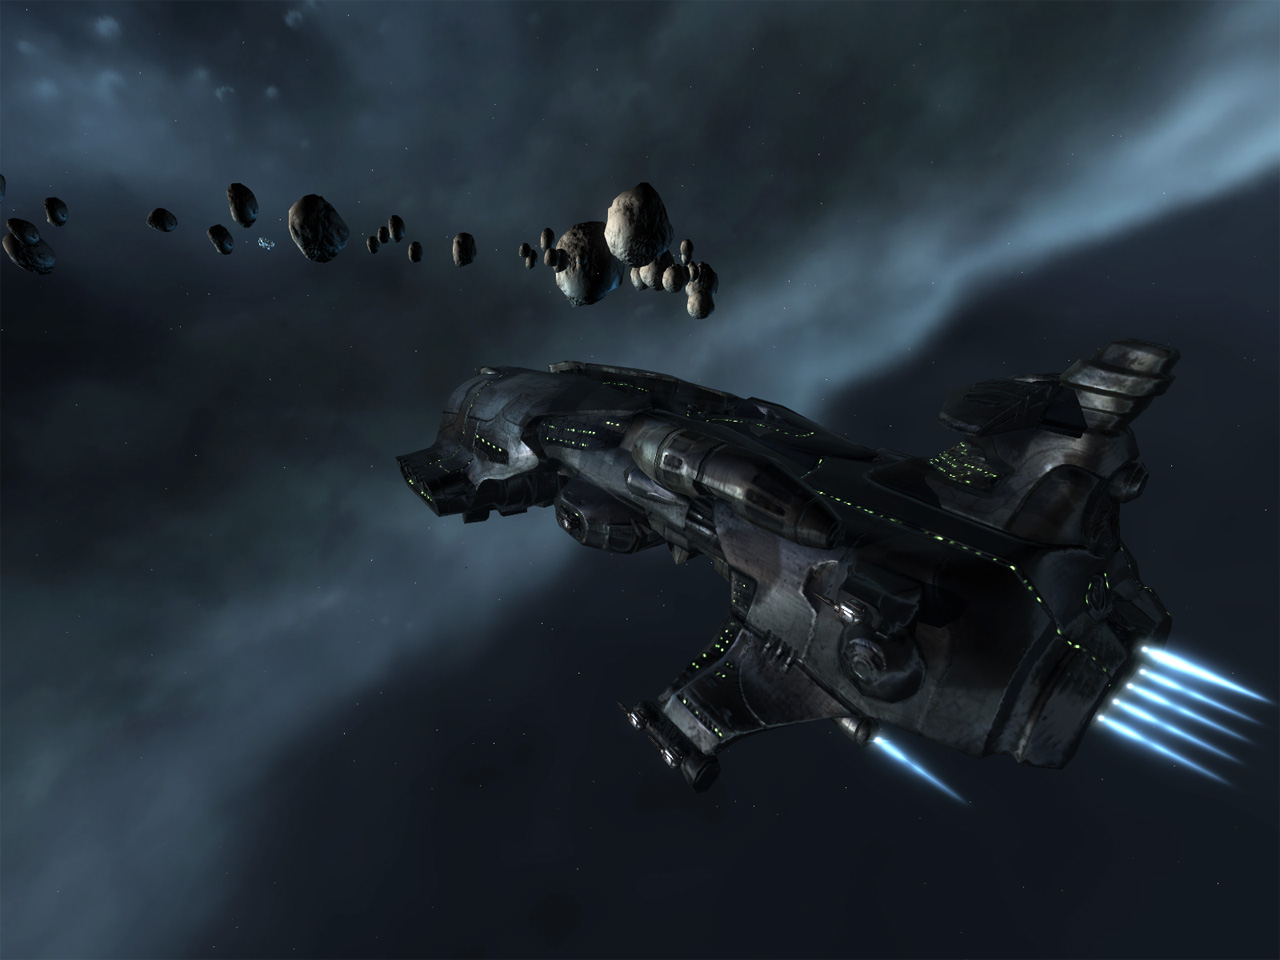 eve online mining drones with Vindicator on Rakshasa AISN Bomber 67288719 besides The Hangar Ship Sizes as well Kotw Reallllly Big Noctis as well Widow also The Risk Of Early Adoption.